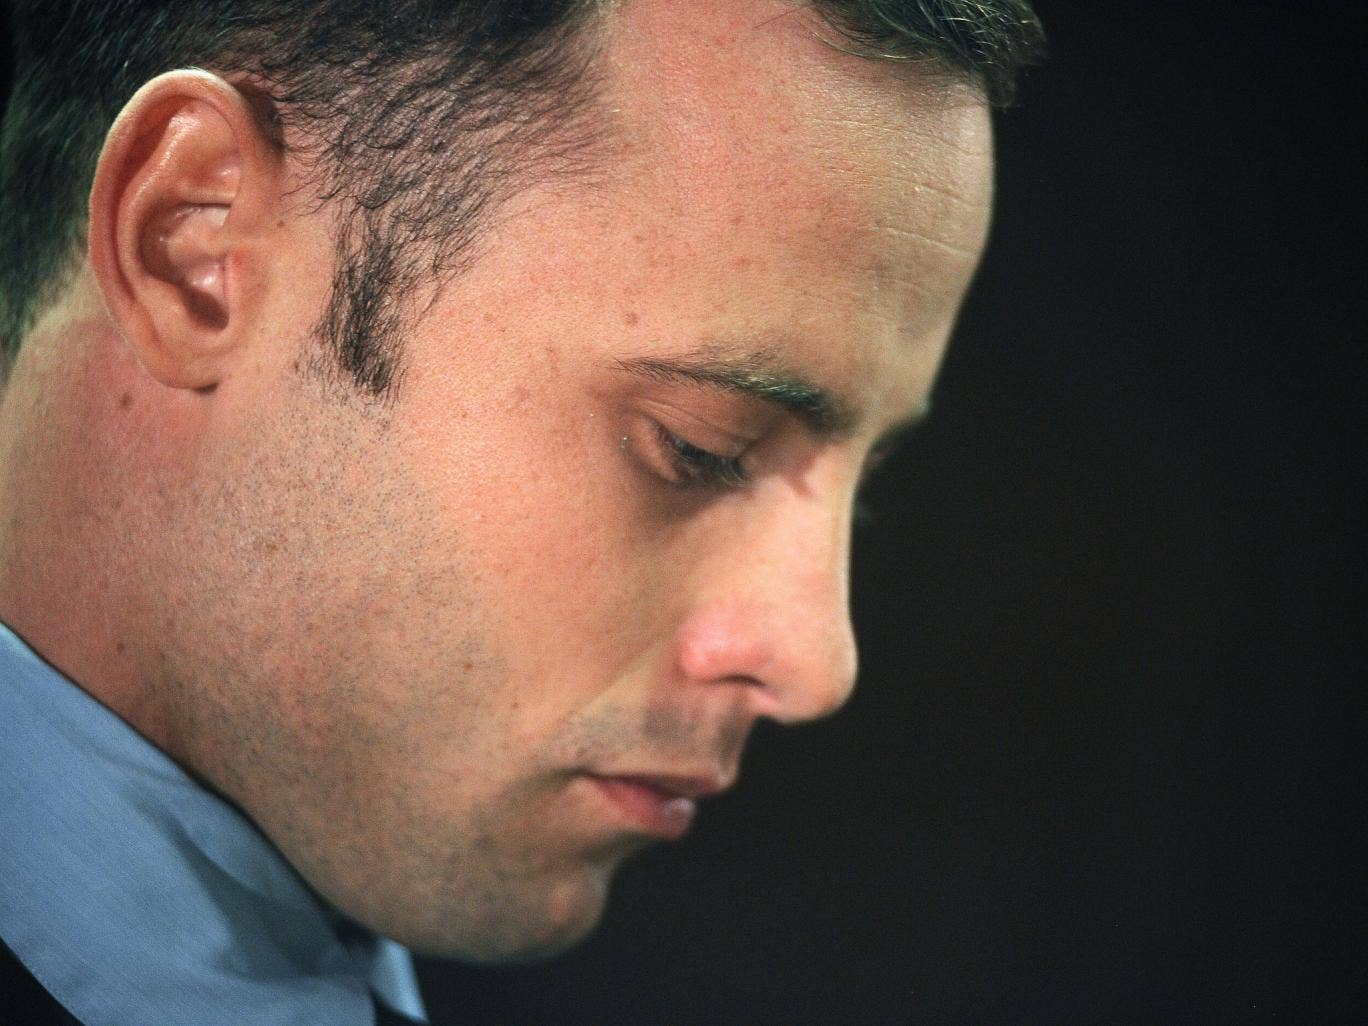 South African Olympic sprinter Oscar Pistorius appears at the Magistrate Court in Pretoria